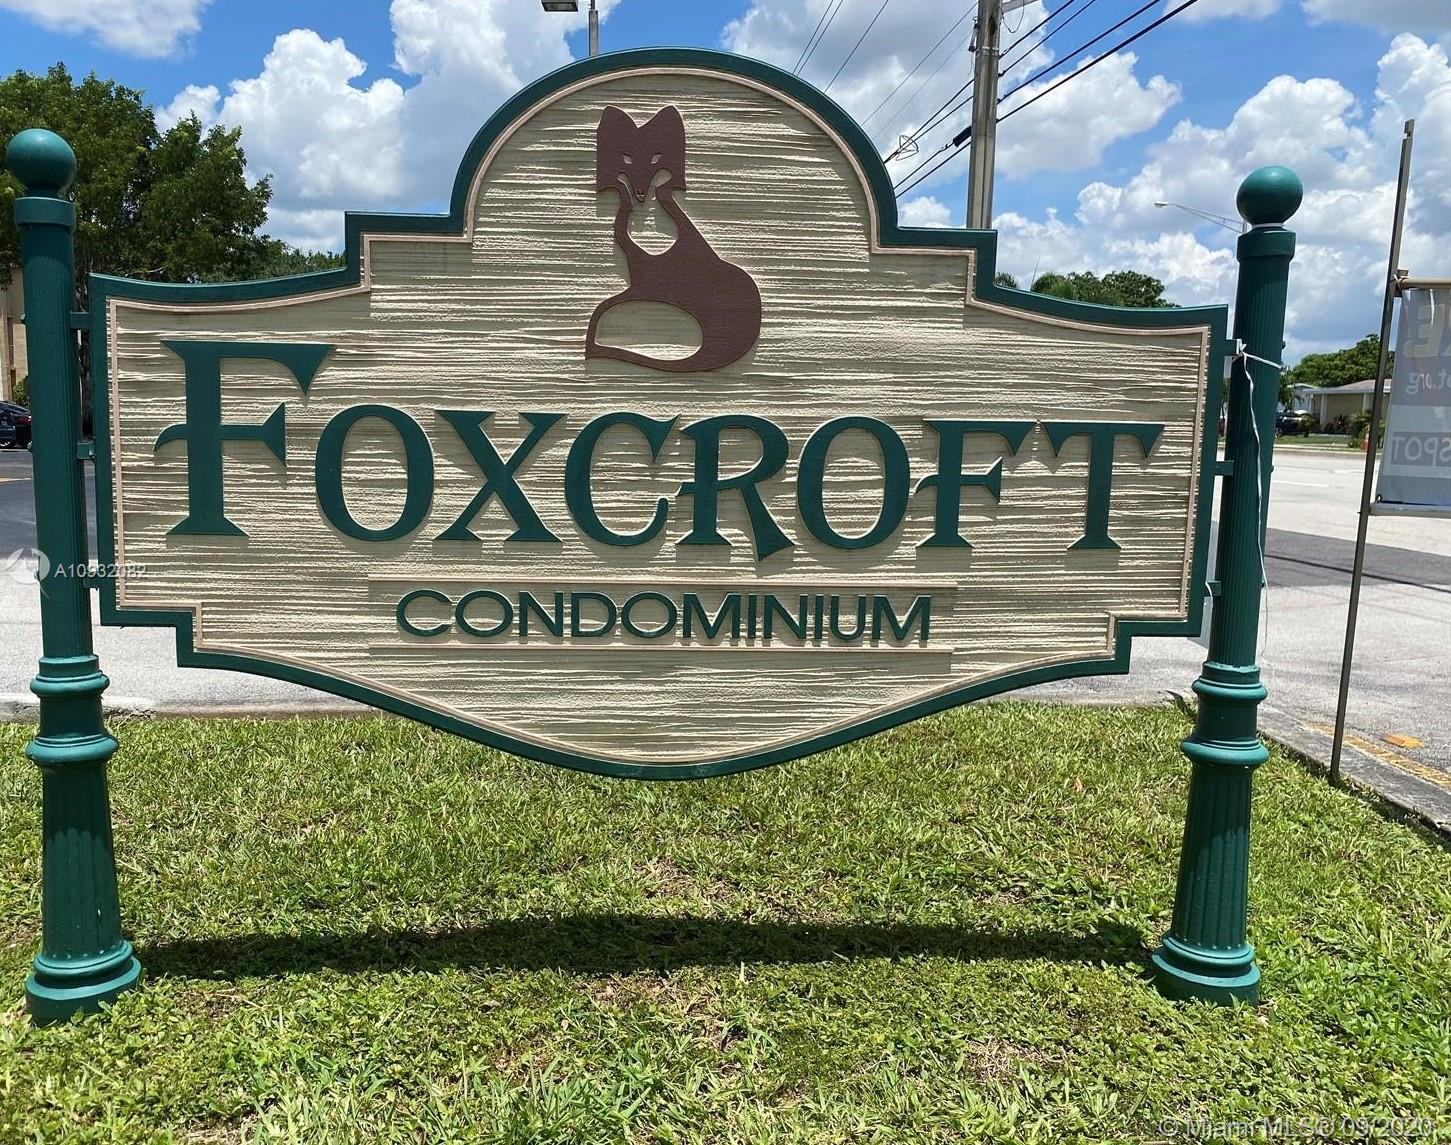 3195 Foxcroft Rd # F317, Miramar, Florida 33025, 2 Bedrooms Bedrooms, ,2 BathroomsBathrooms,Residential,For Sale,3195 Foxcroft Rd # F317,A10932082